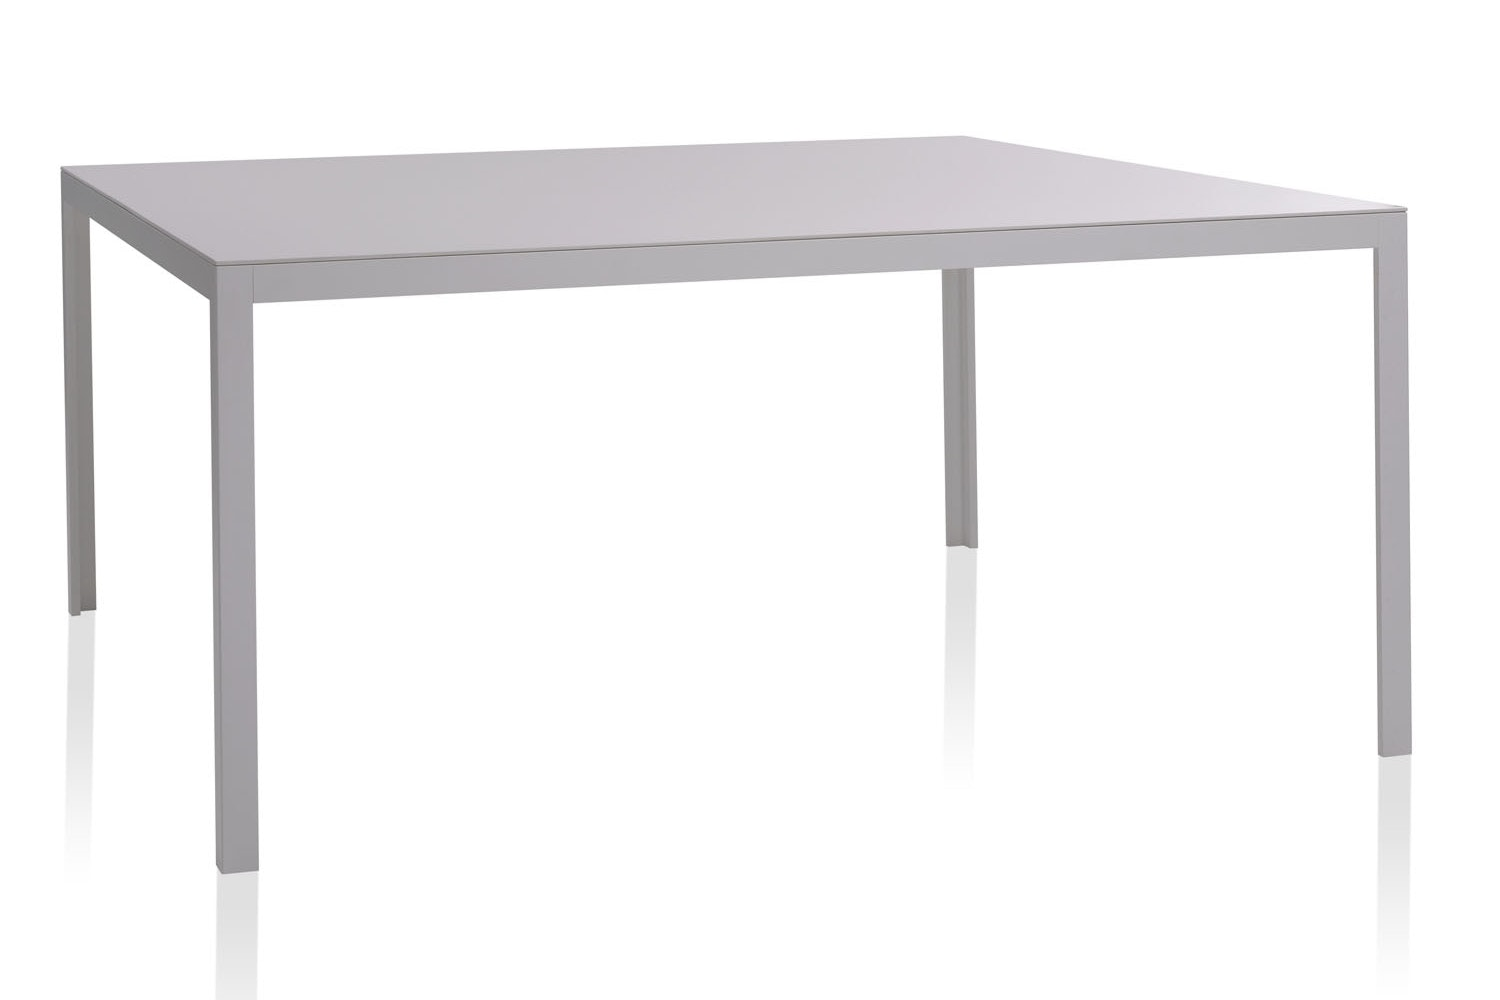 Fractal Table by Piero Lissoni for Porro